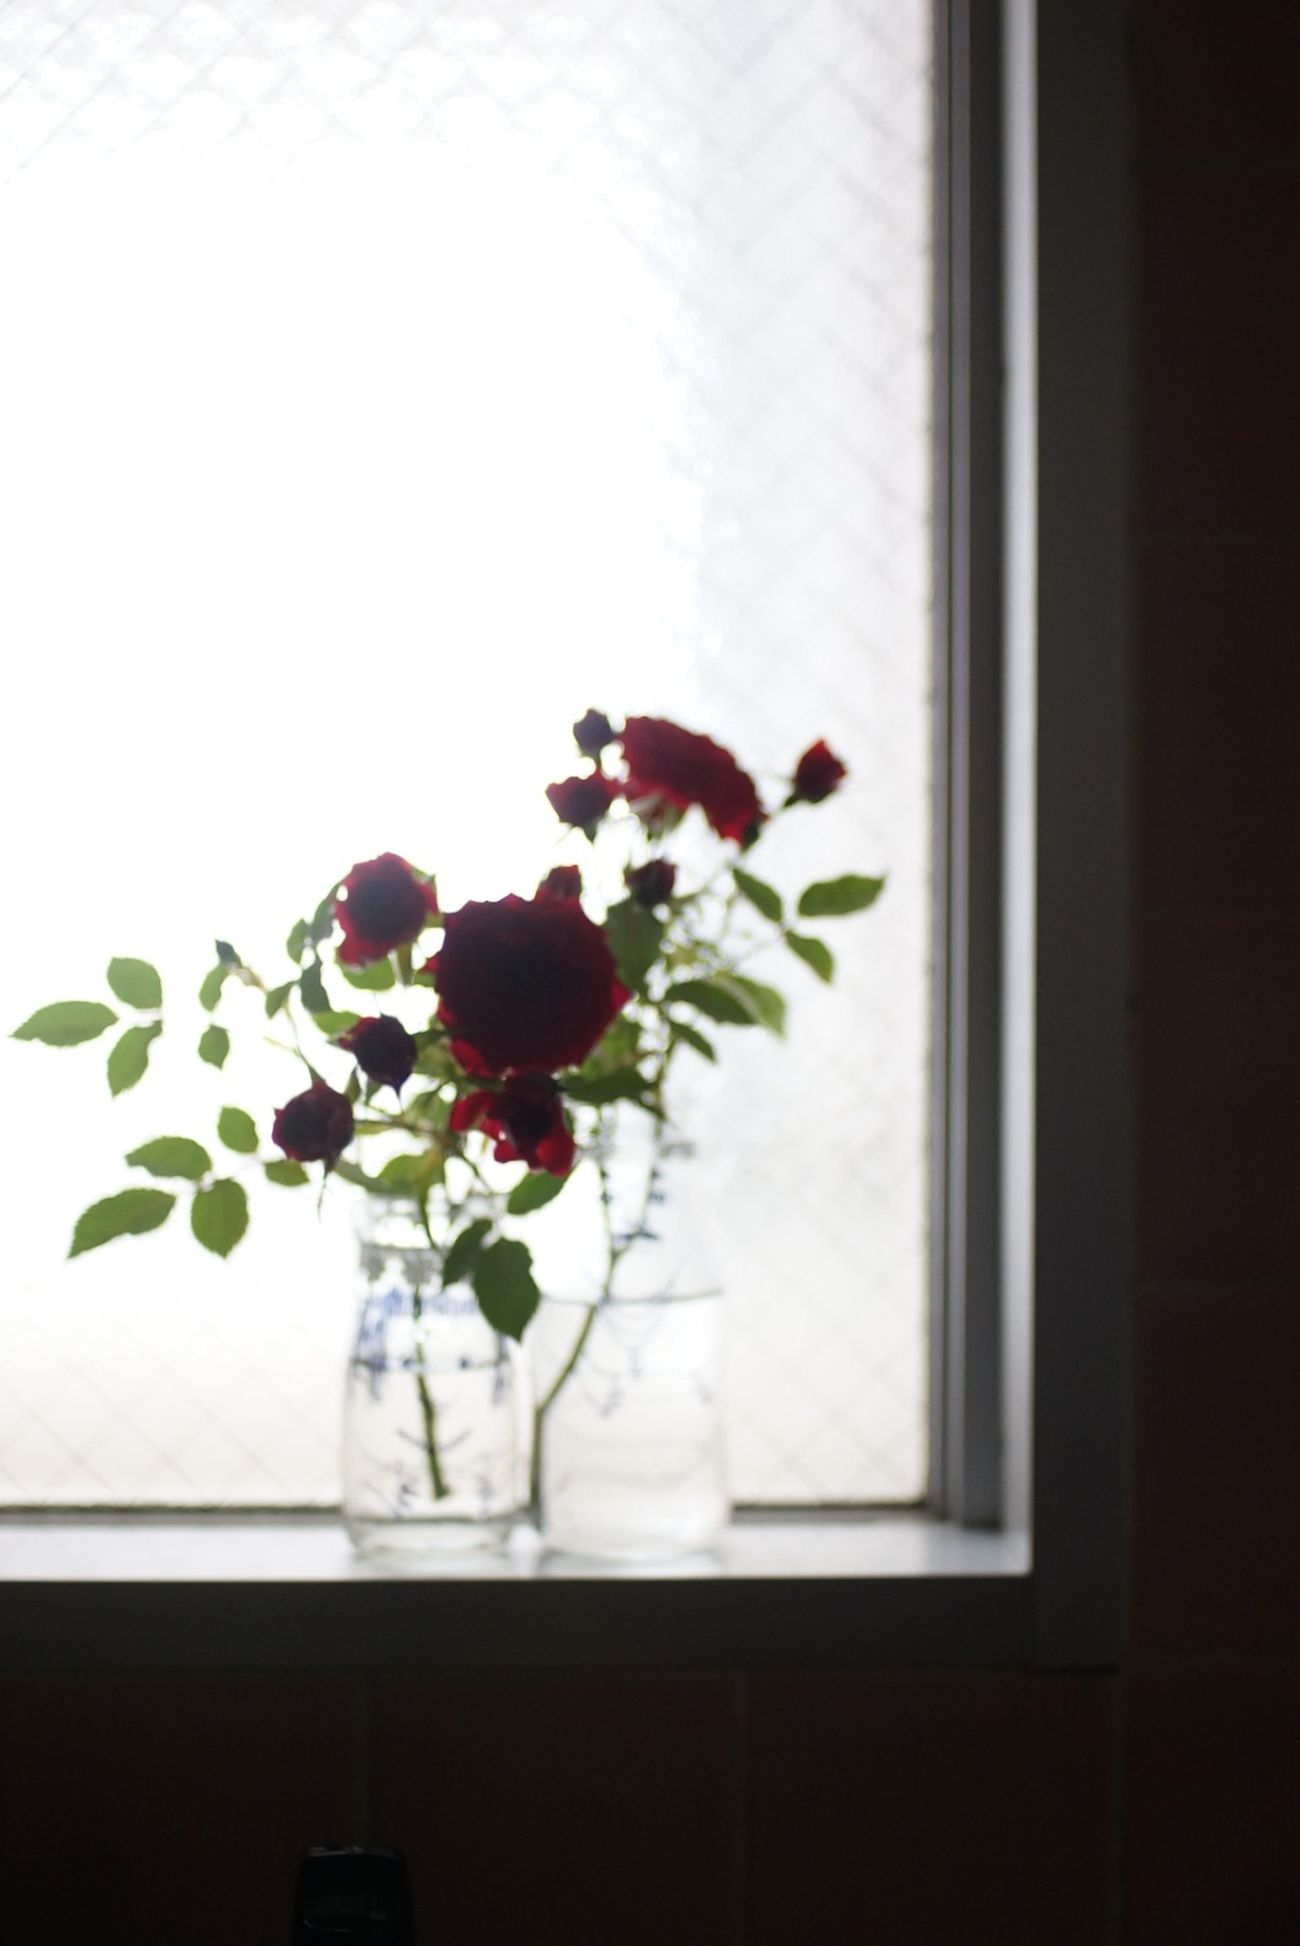 Flower Window Indoors  Day Nature Spring Beauty In Nature オールドレンズ Nofilter Oldlens 光と影